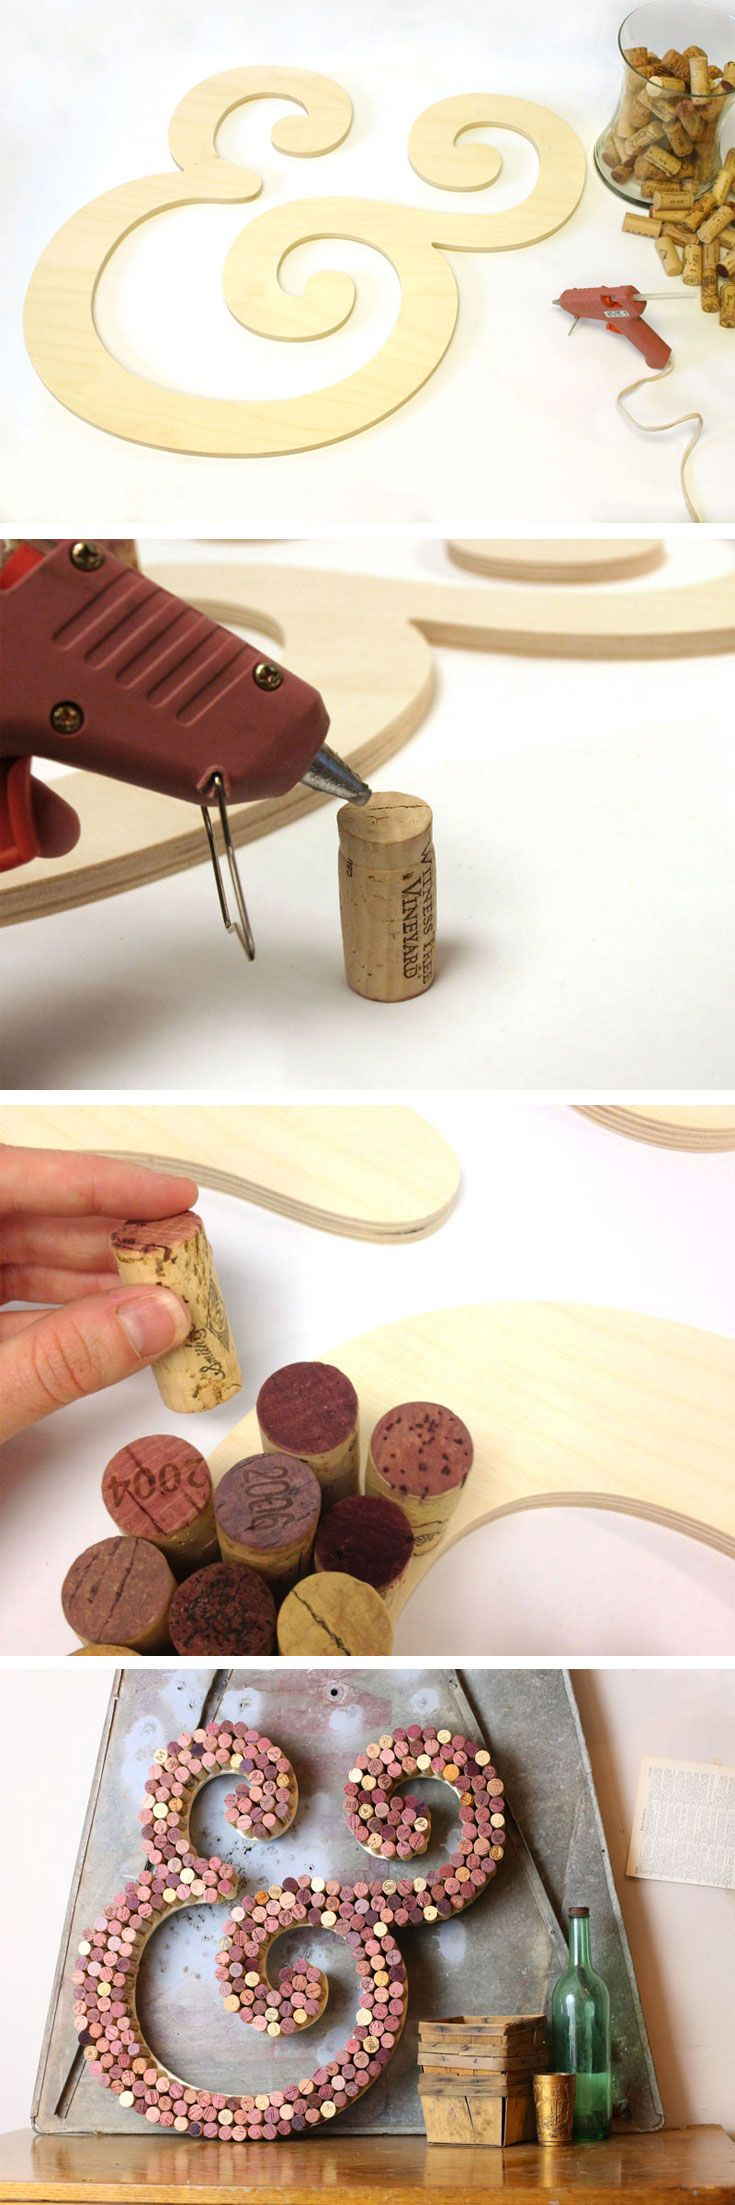 Wine cork ampersand DIY. Great way to use the wine corks from the wedding